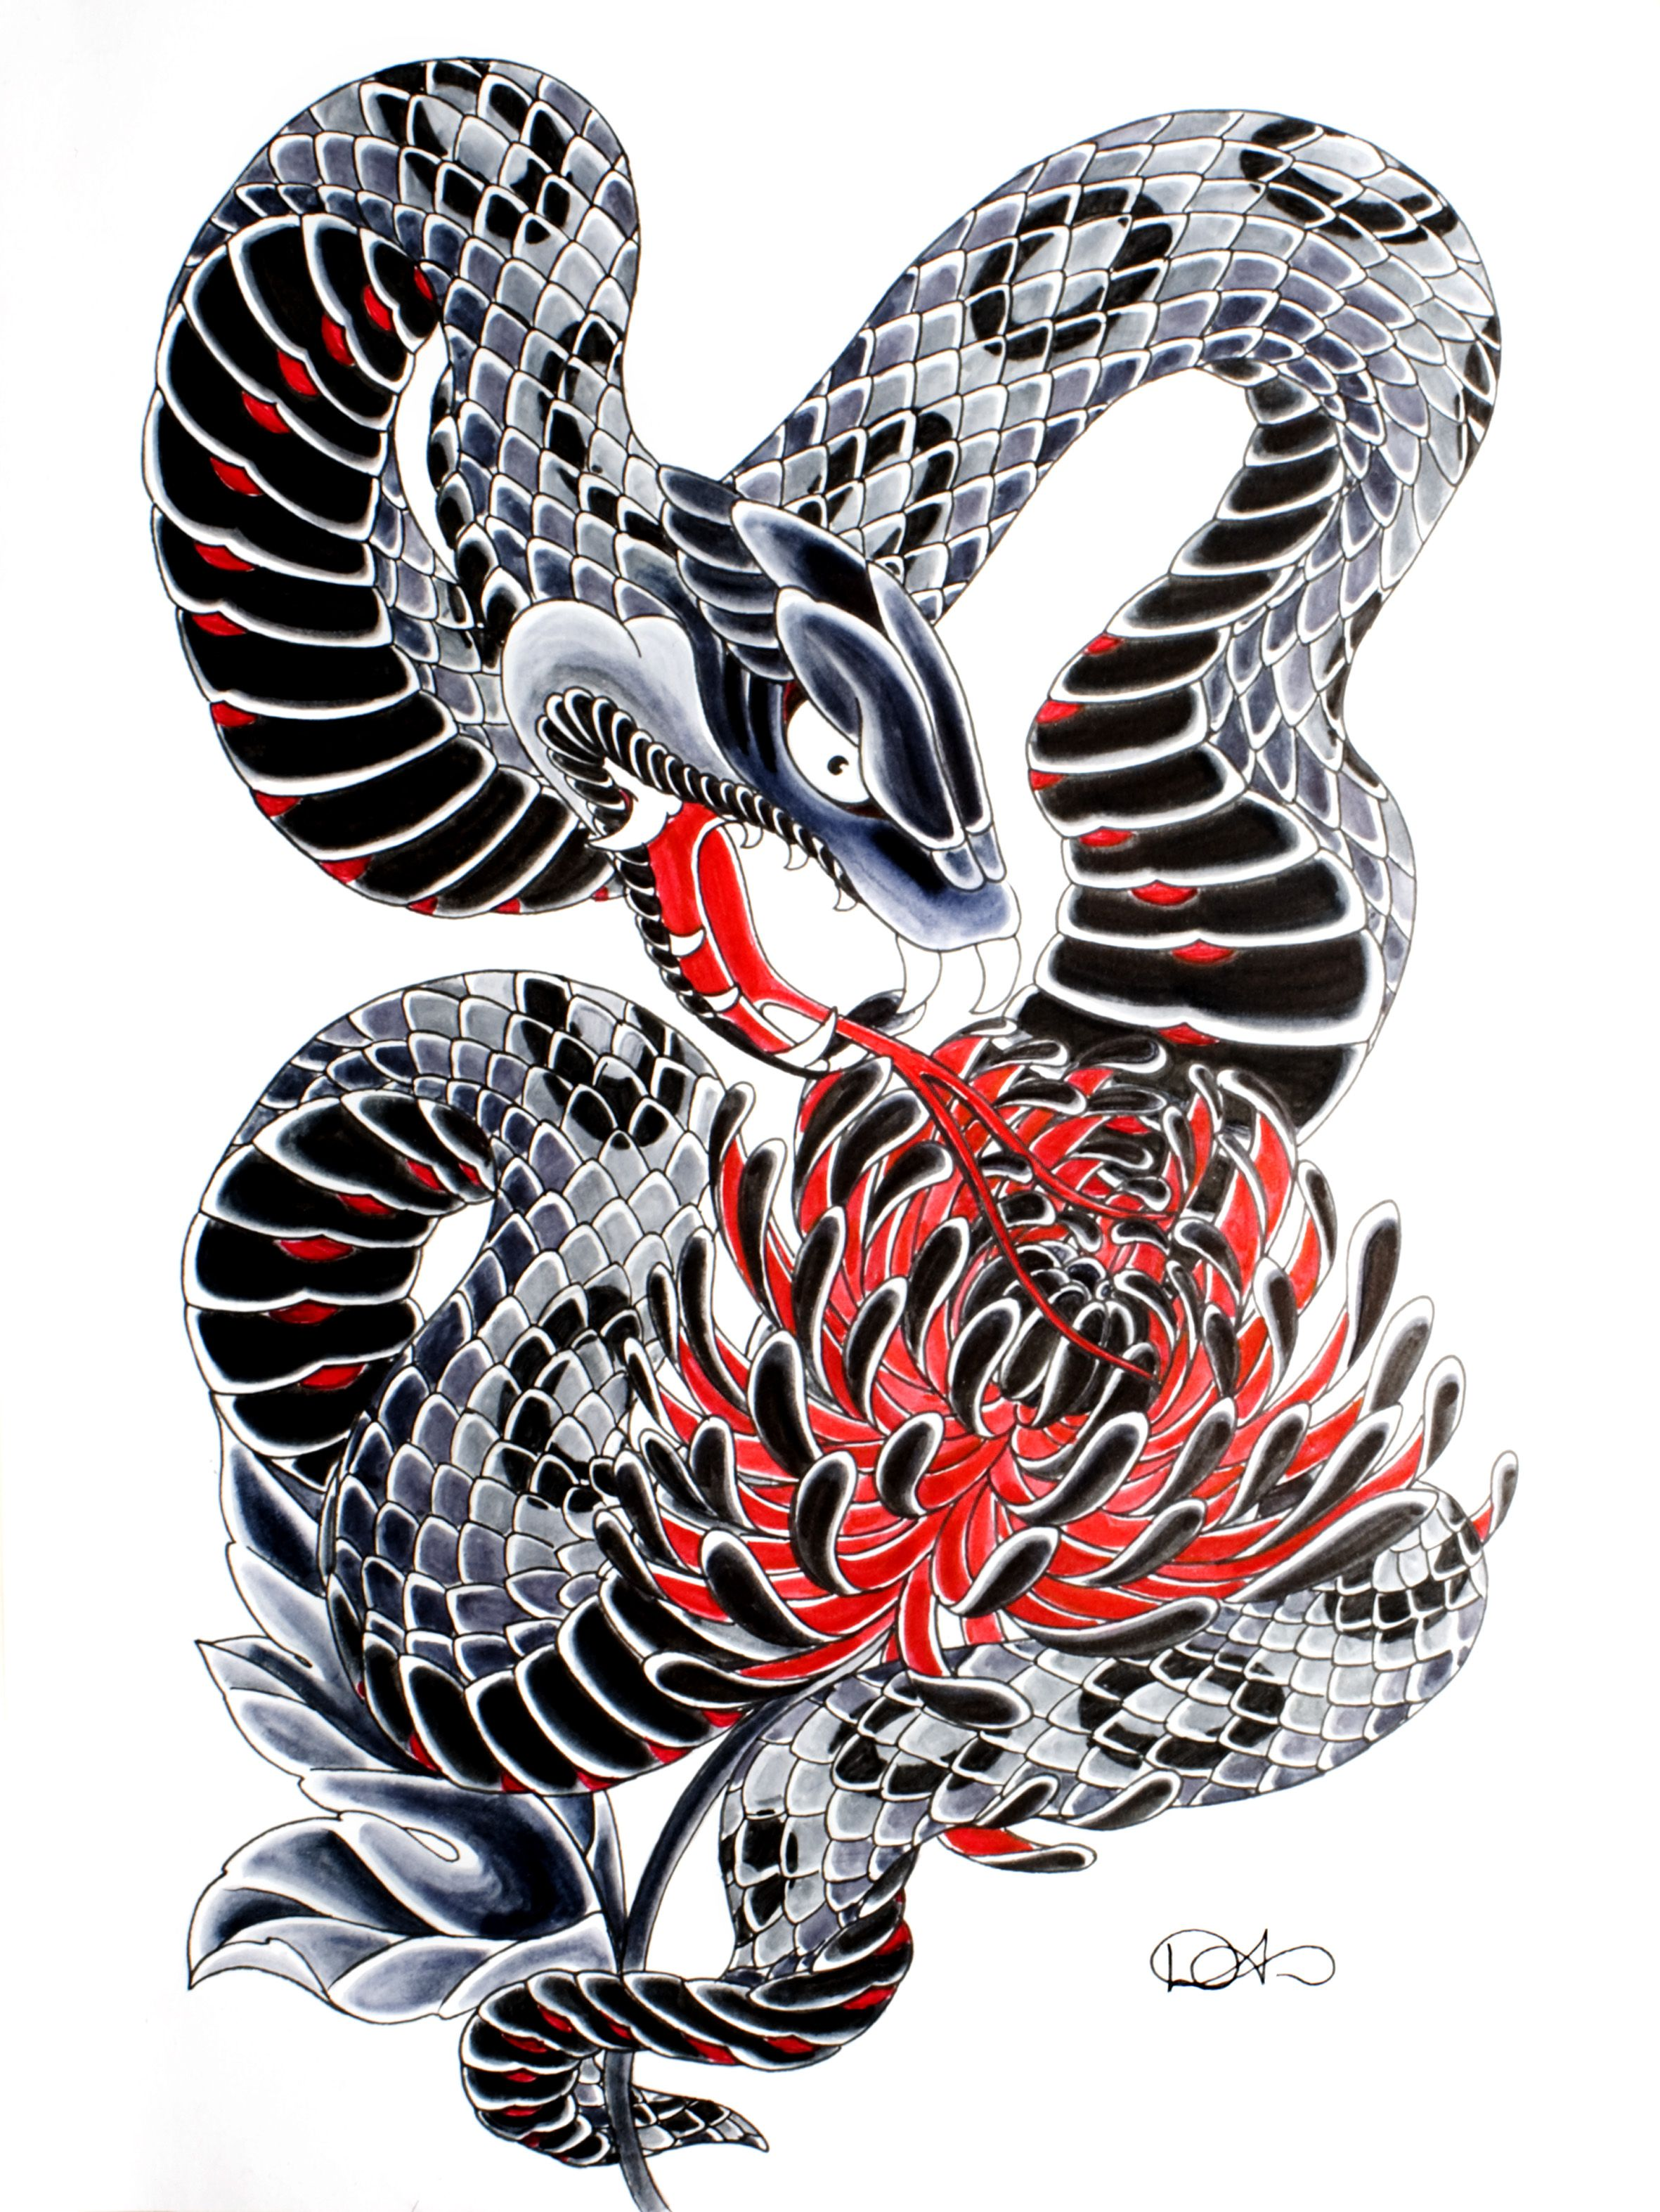 Pin By Chynna On Tatted Red Ink Tattoos Red Tattoos Red Dragon Tattoo